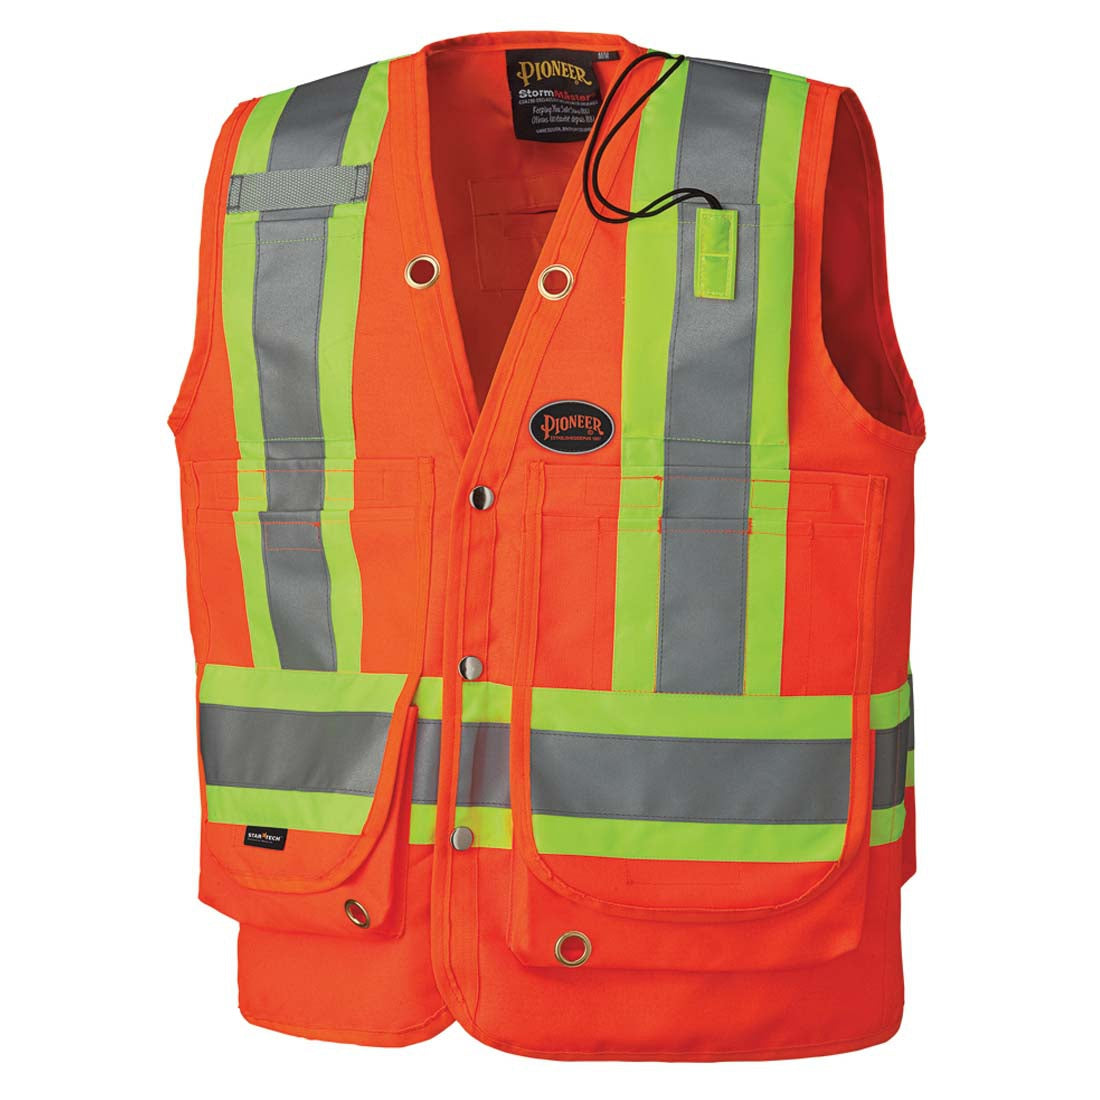 Pioneer Hi-Viz Surveyor's Safety Vest